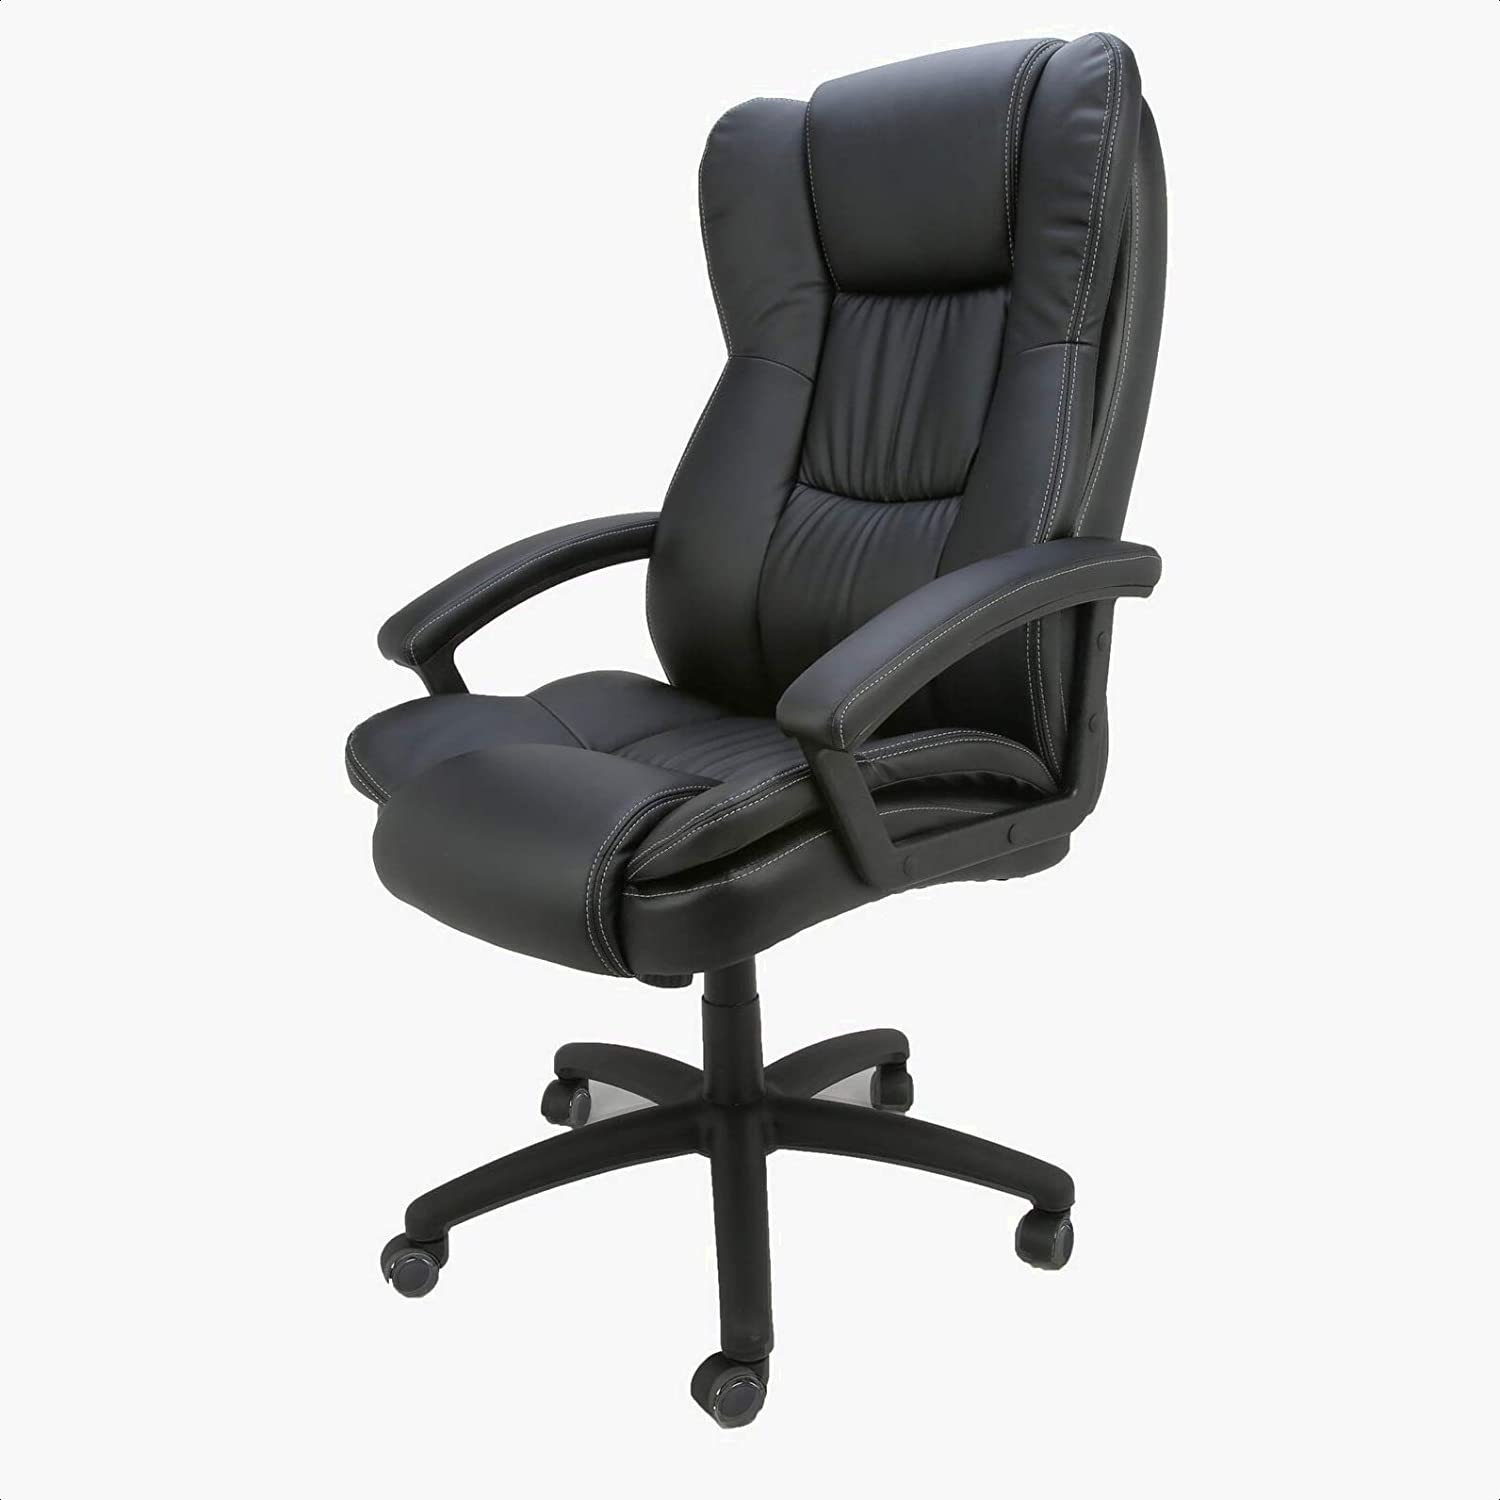 Executive Chair Max 41% OFF Minimum Seat Height - to Floor Seat: 18.1 Comp At the price of surprise